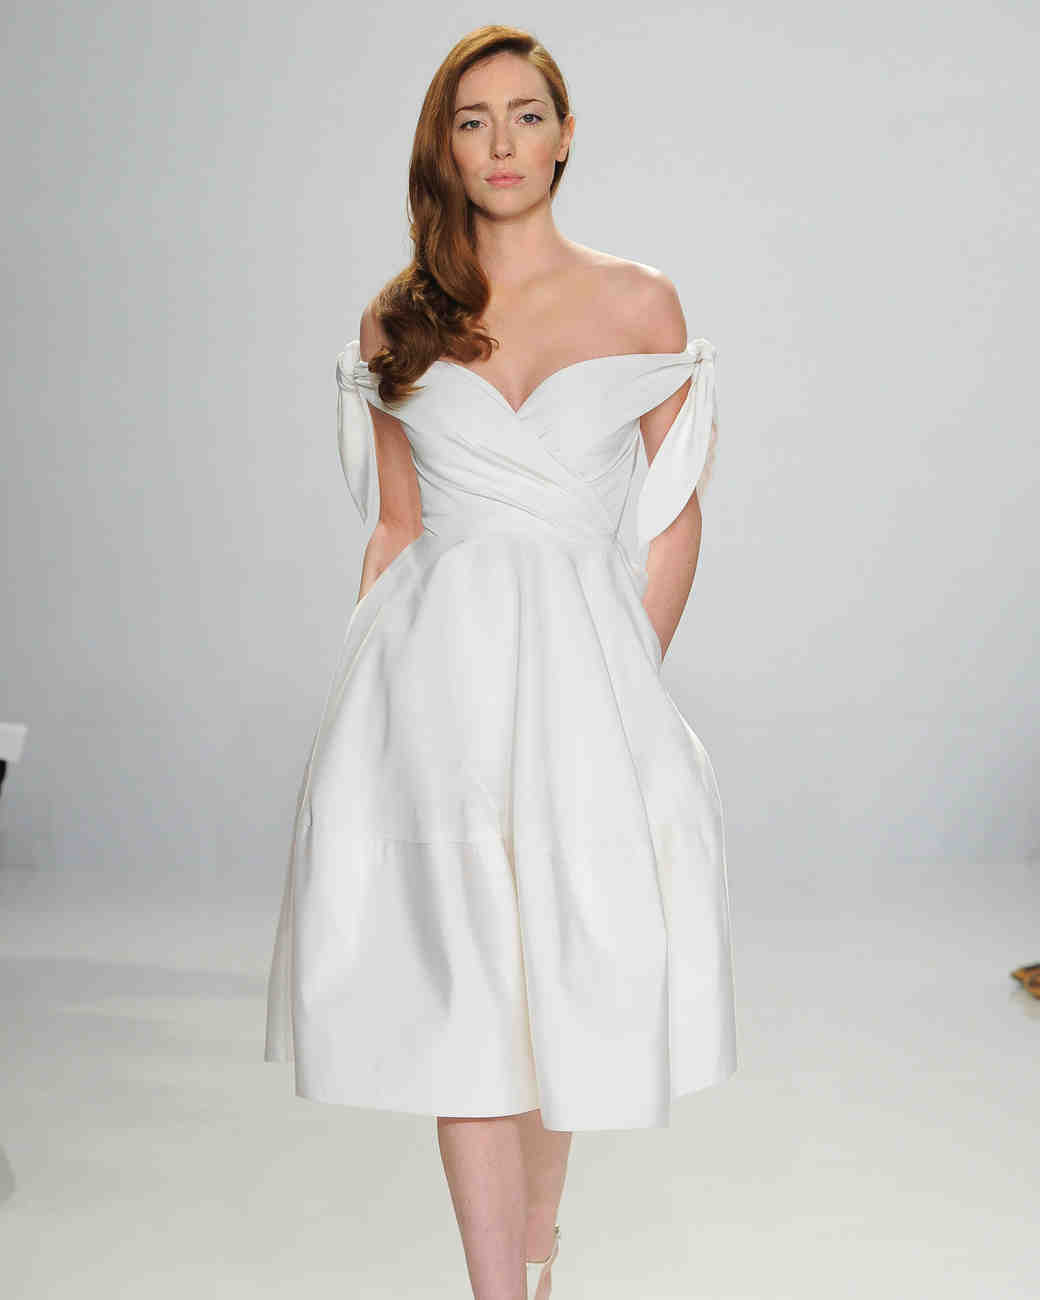 Christian Siriano Bow Wedding Dress